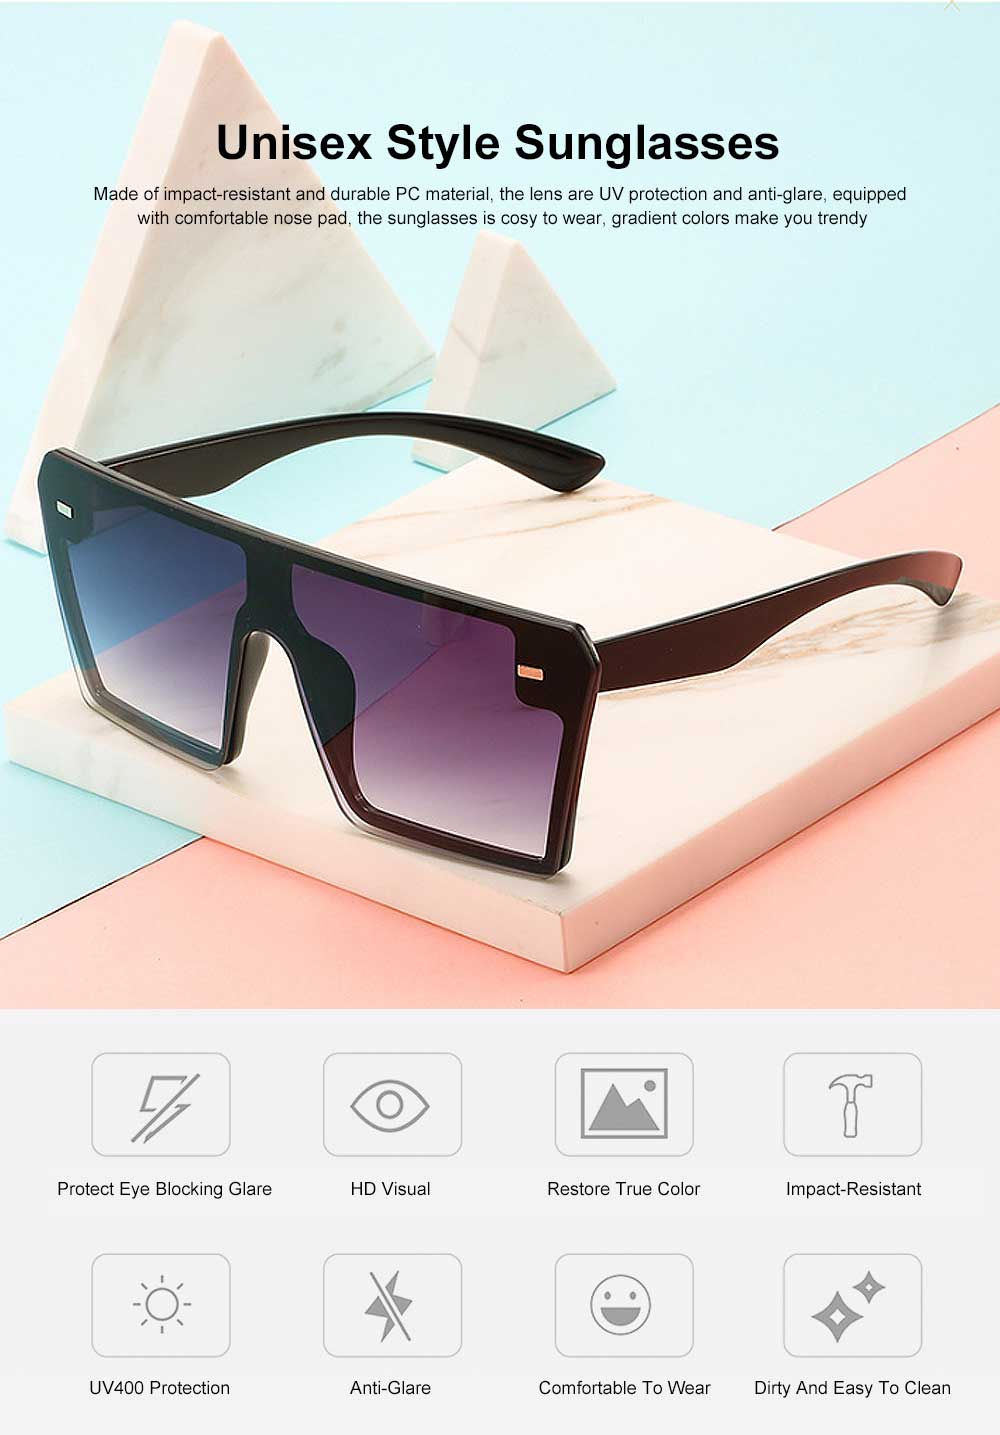 Frameless Unisex Sunglasses Gradient Colors Anti-Glare Lens with Comfortable Nose Pad UV Protection Sunglasses 0